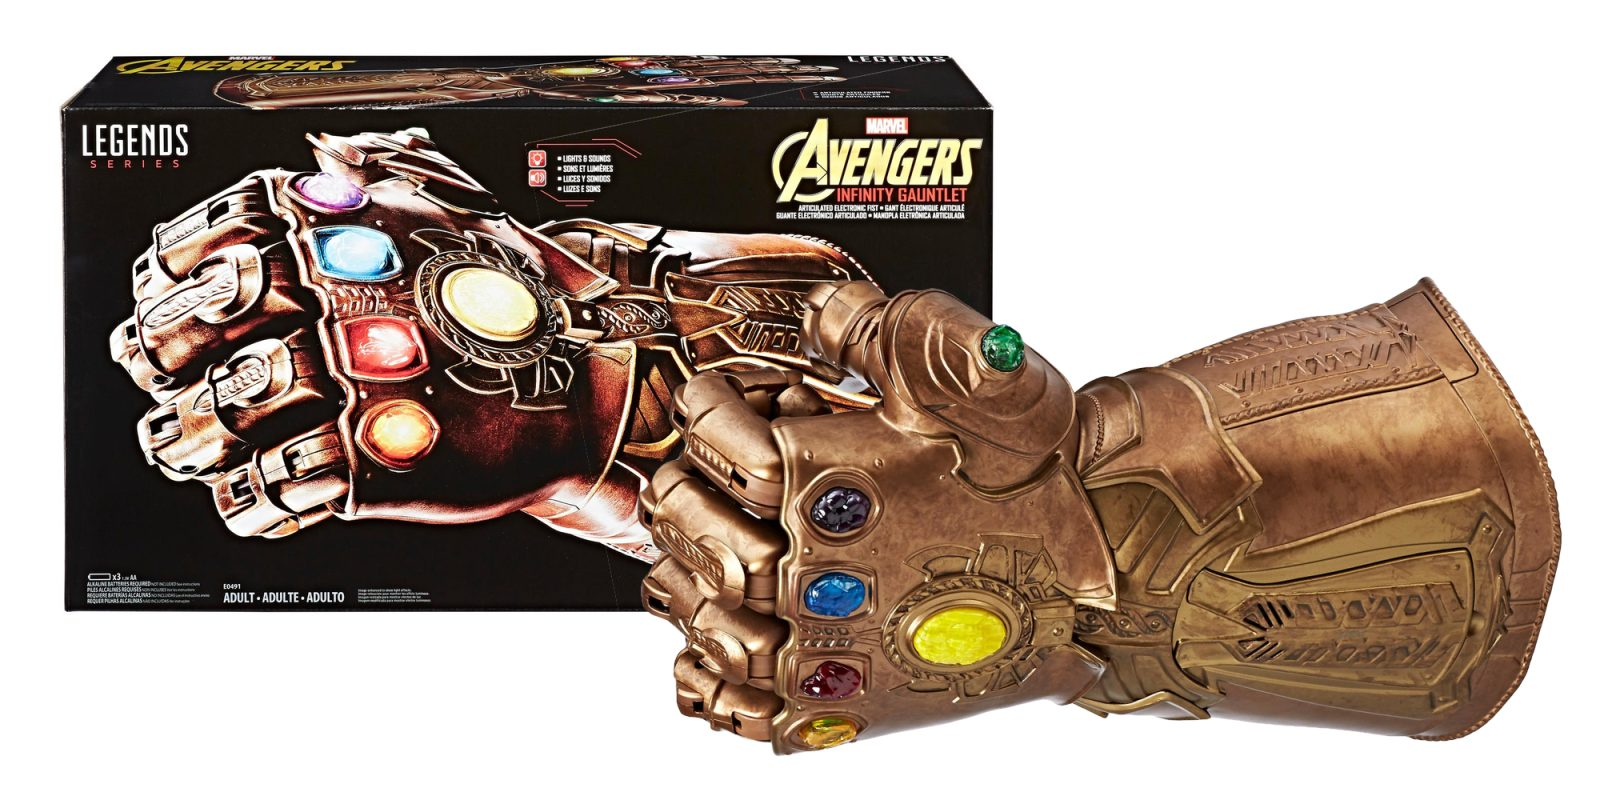 Snap 30% off the Marvel Legends Infinity Gauntlet at $70 (Amazon all